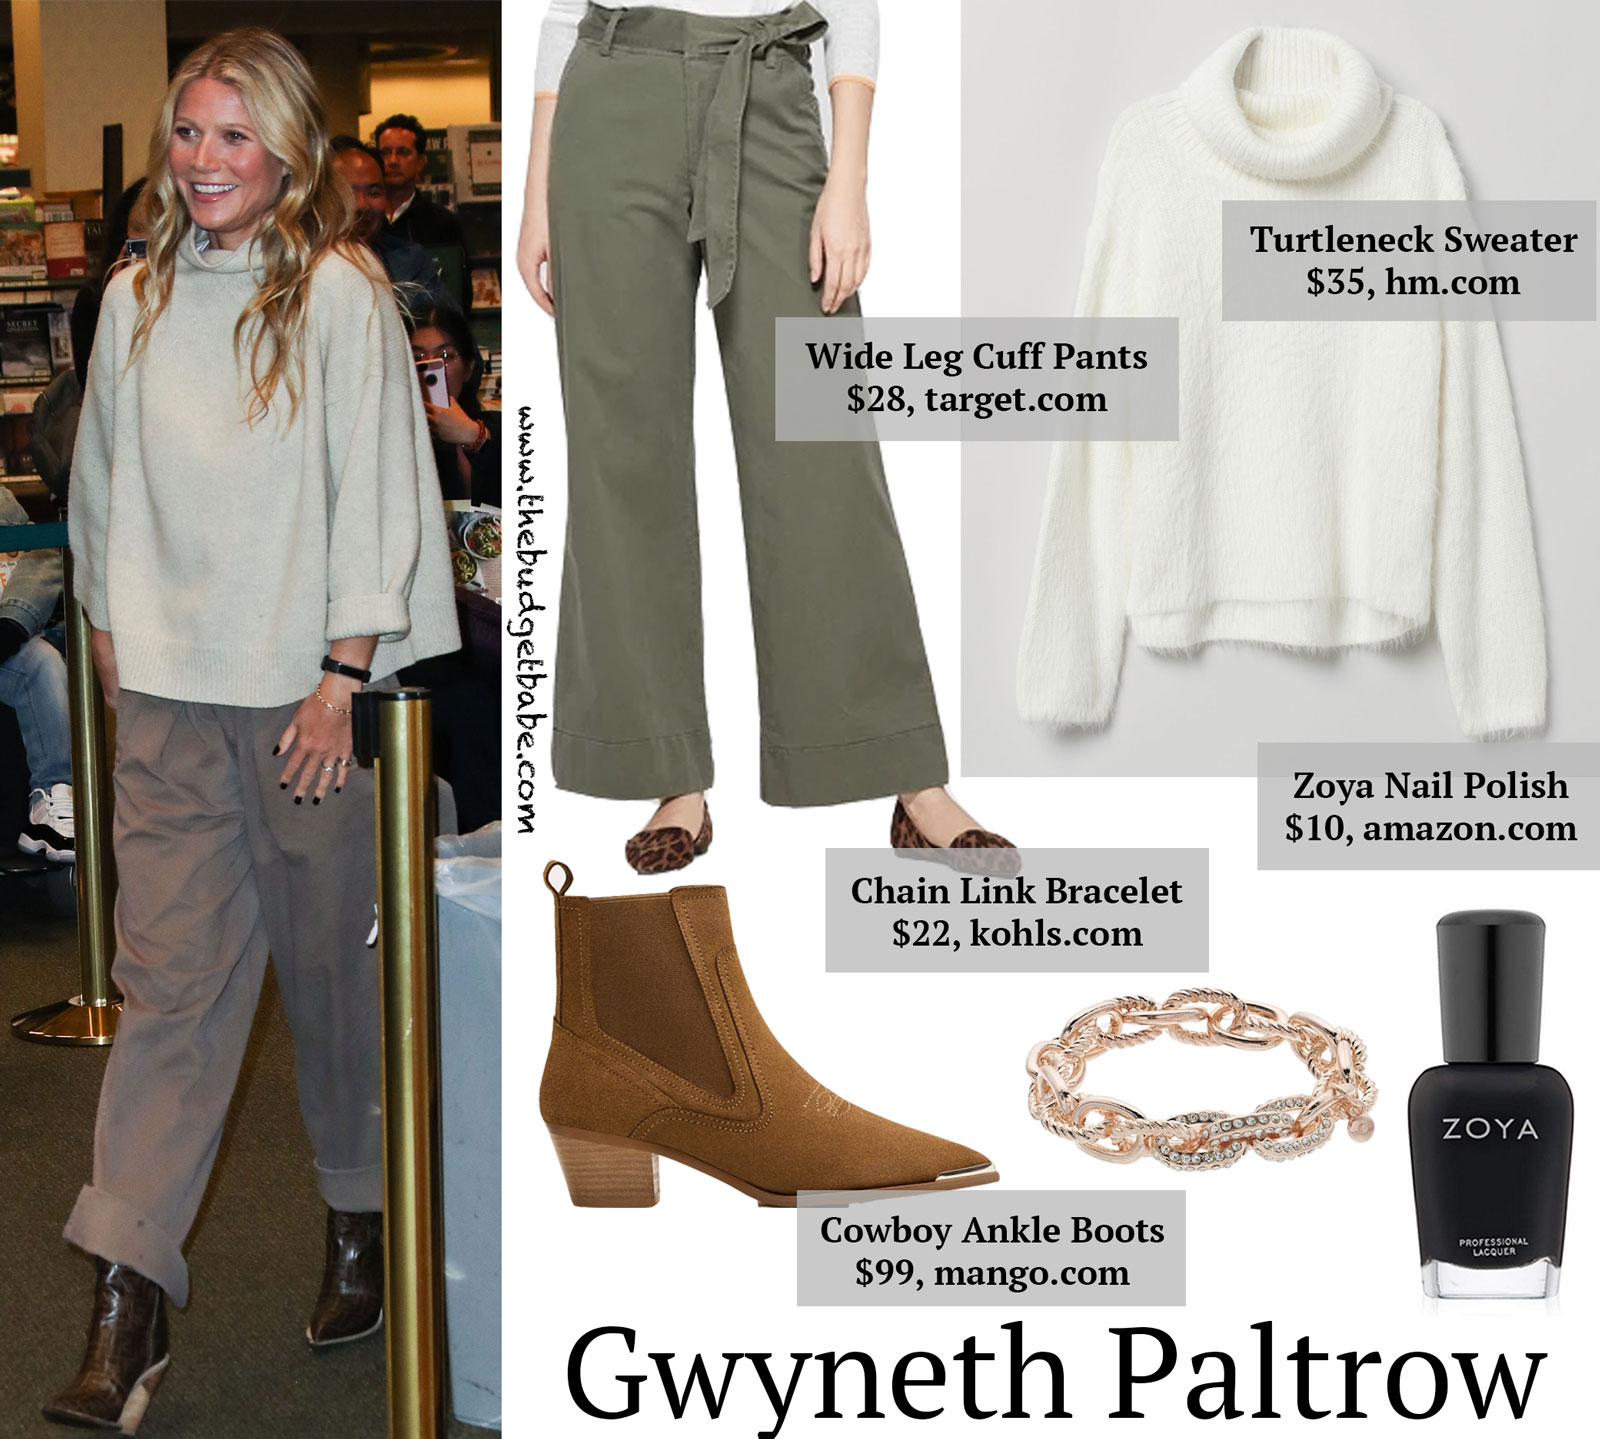 Gwyneth Paltrow Fendi Boots and Wide Leg Pants Look for Less